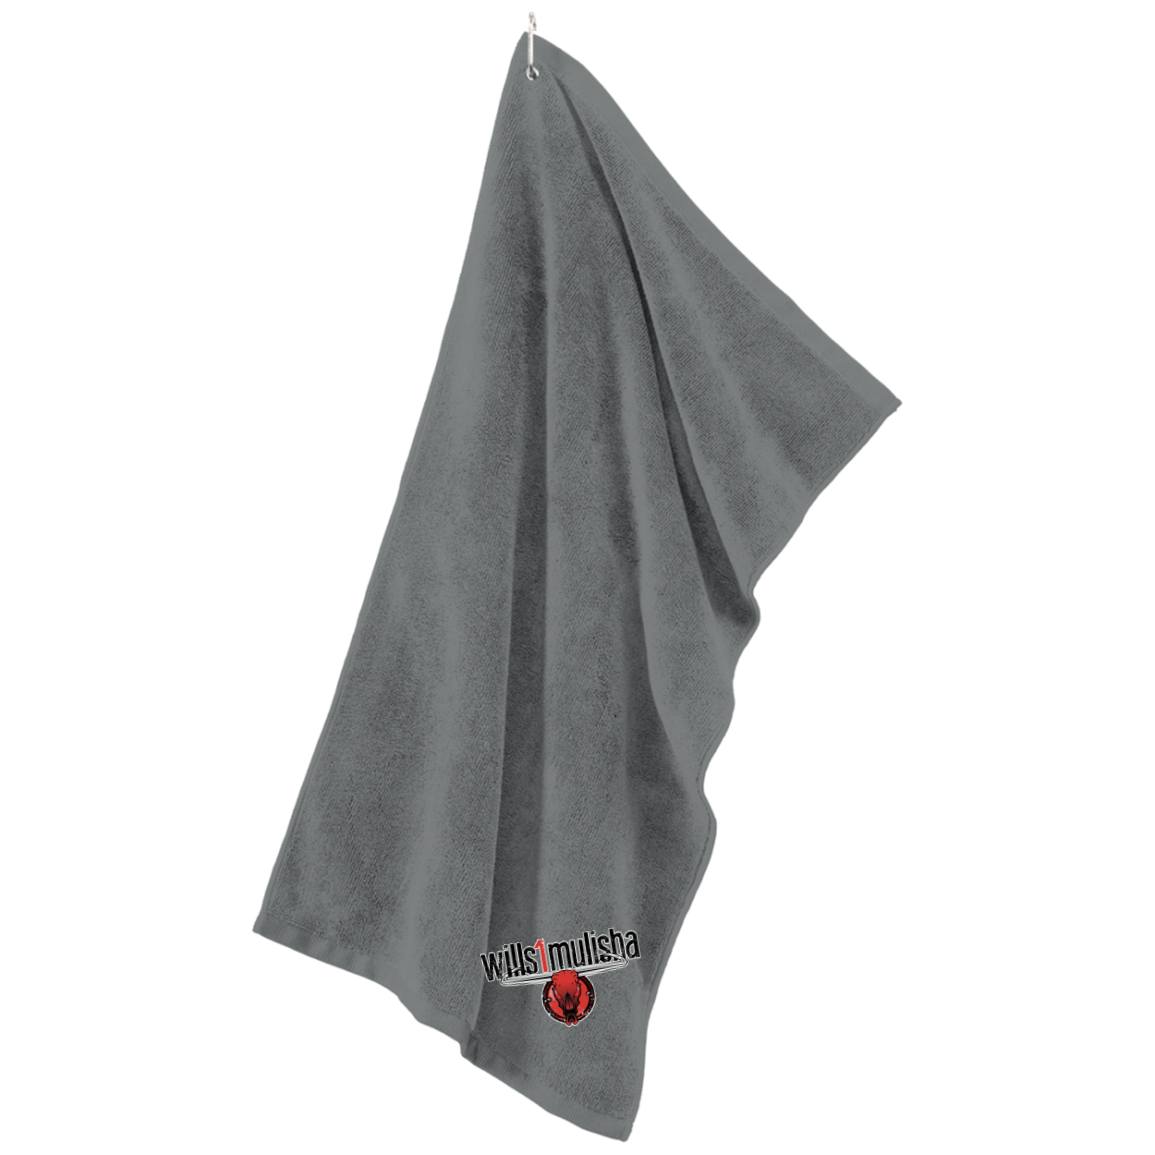 wills1mulisha Embroidered Port Authority Microfiber Golf Towel